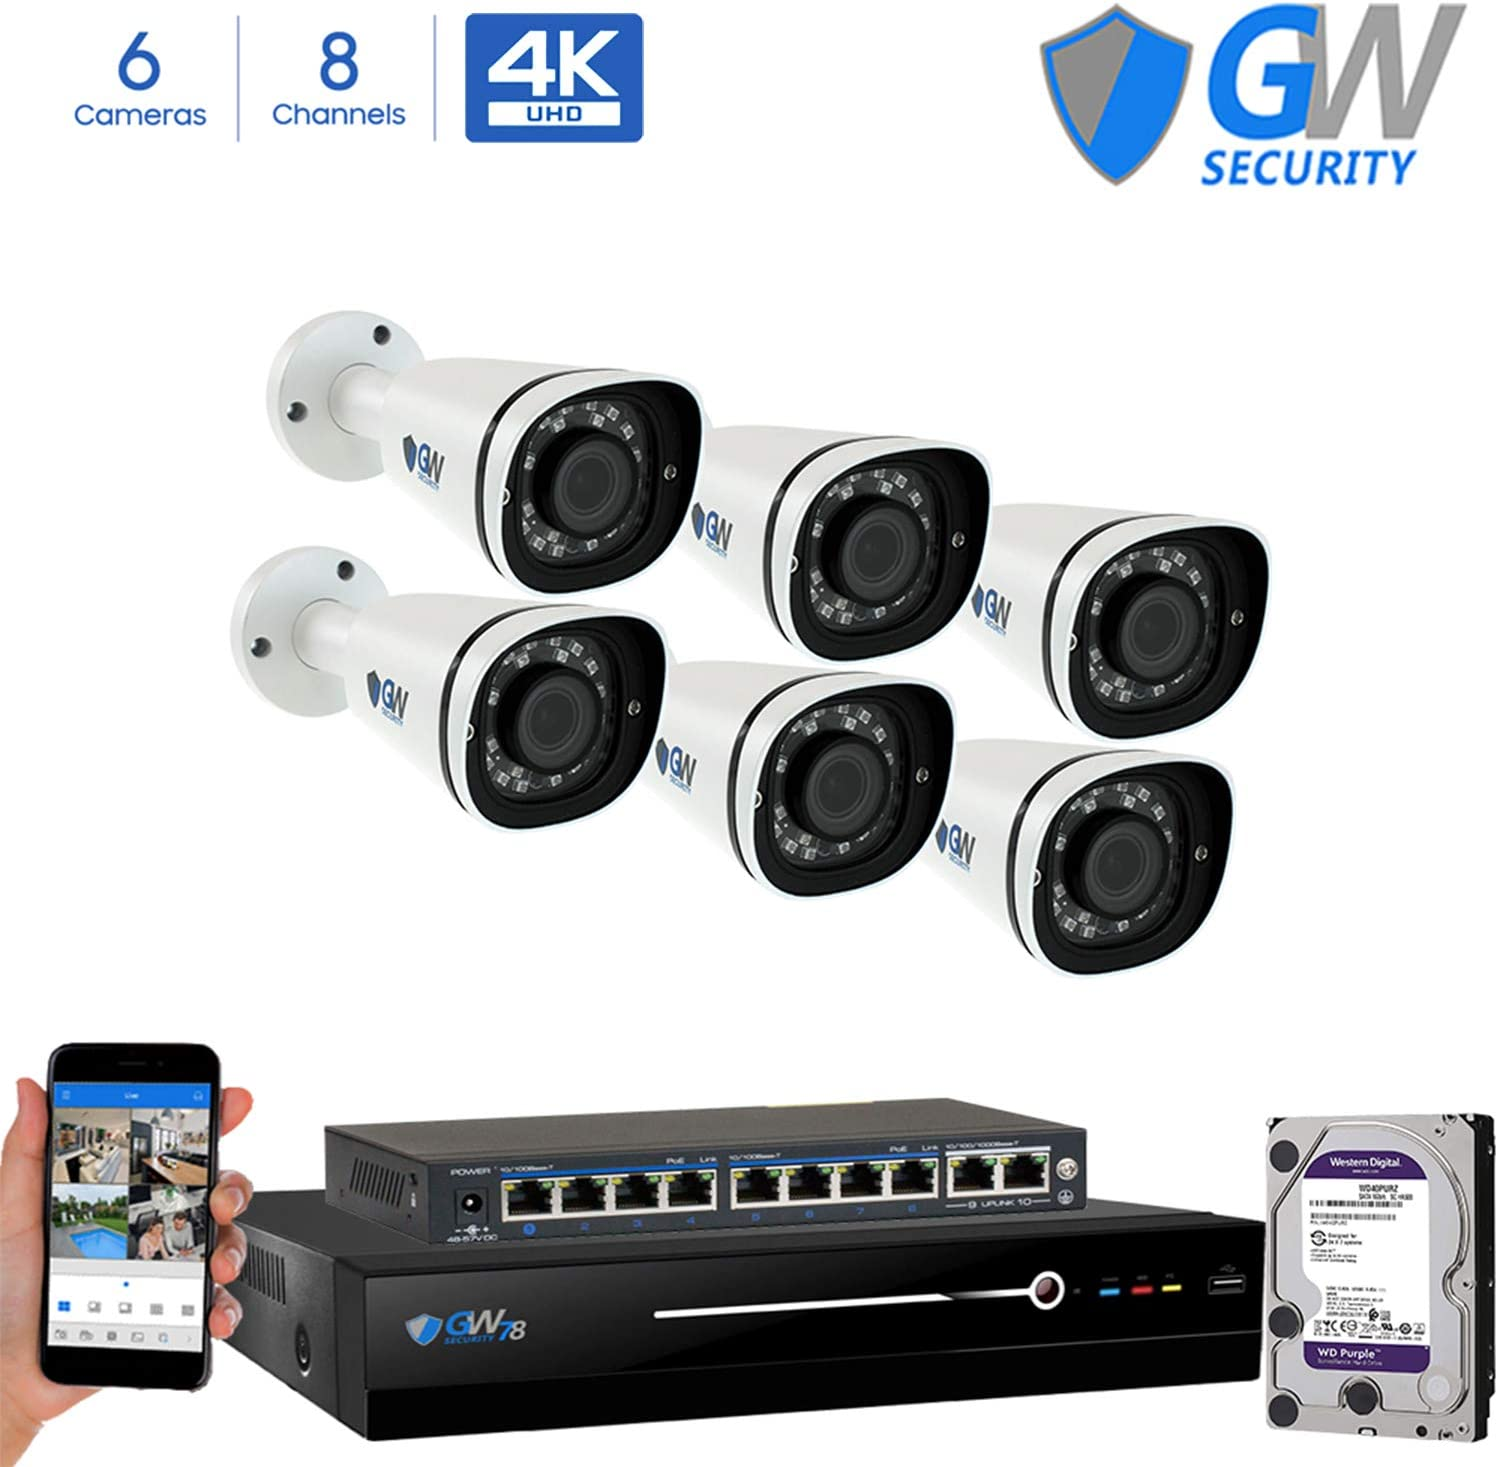 GW 8 Channel 8MP UltraHD 4K 3840×2160 Audio Video Motorized Zoom Home NVR Security System – 6 x Bullet 8 Megapixel 2.8-8mm 3X Optical Zoom Waterproof IP PoE Cameras Built-in Microphone